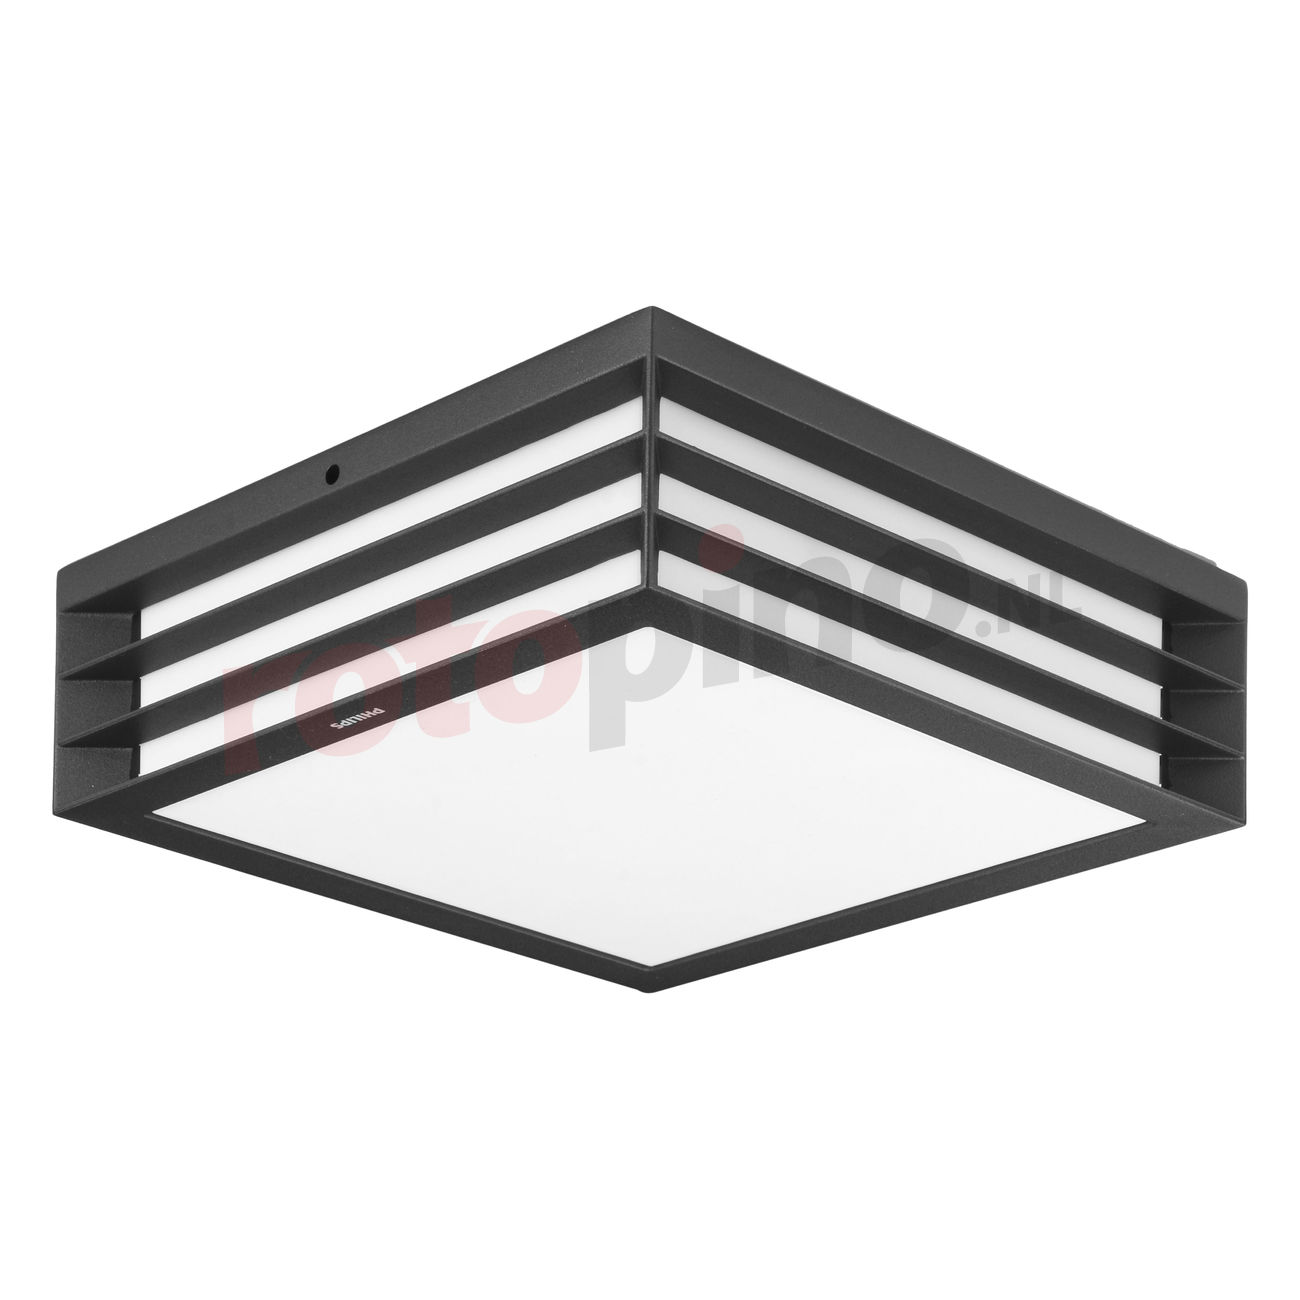 Philips Buitenlamp Buitenlamp Plafond Moonshine Philips 1735093pn